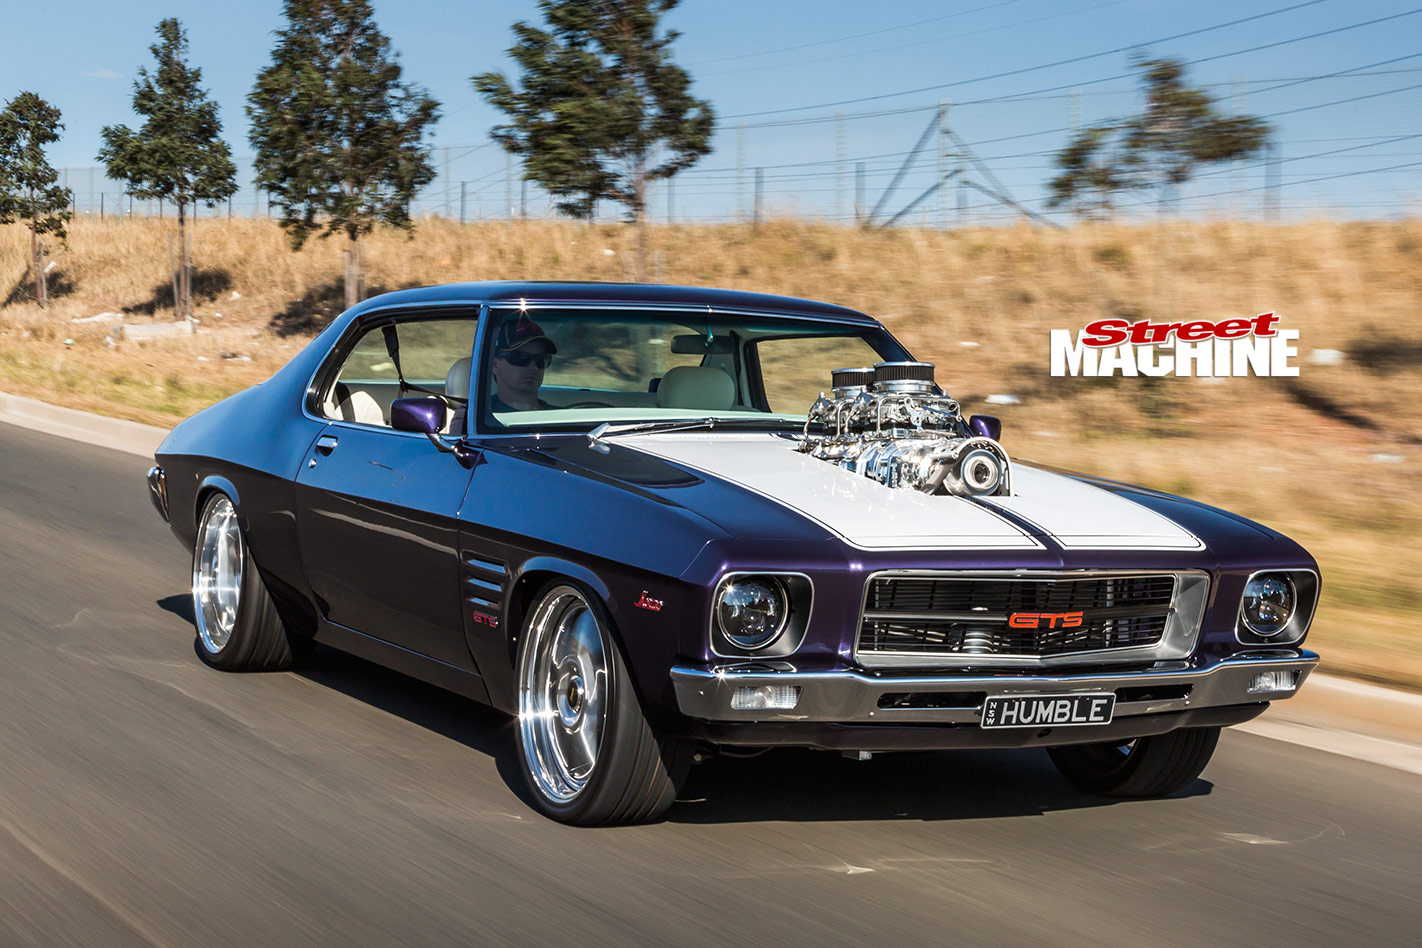 ELITE-LEVEL BLOWN HOLDEN HQ MONARO GTS - HUMBLE